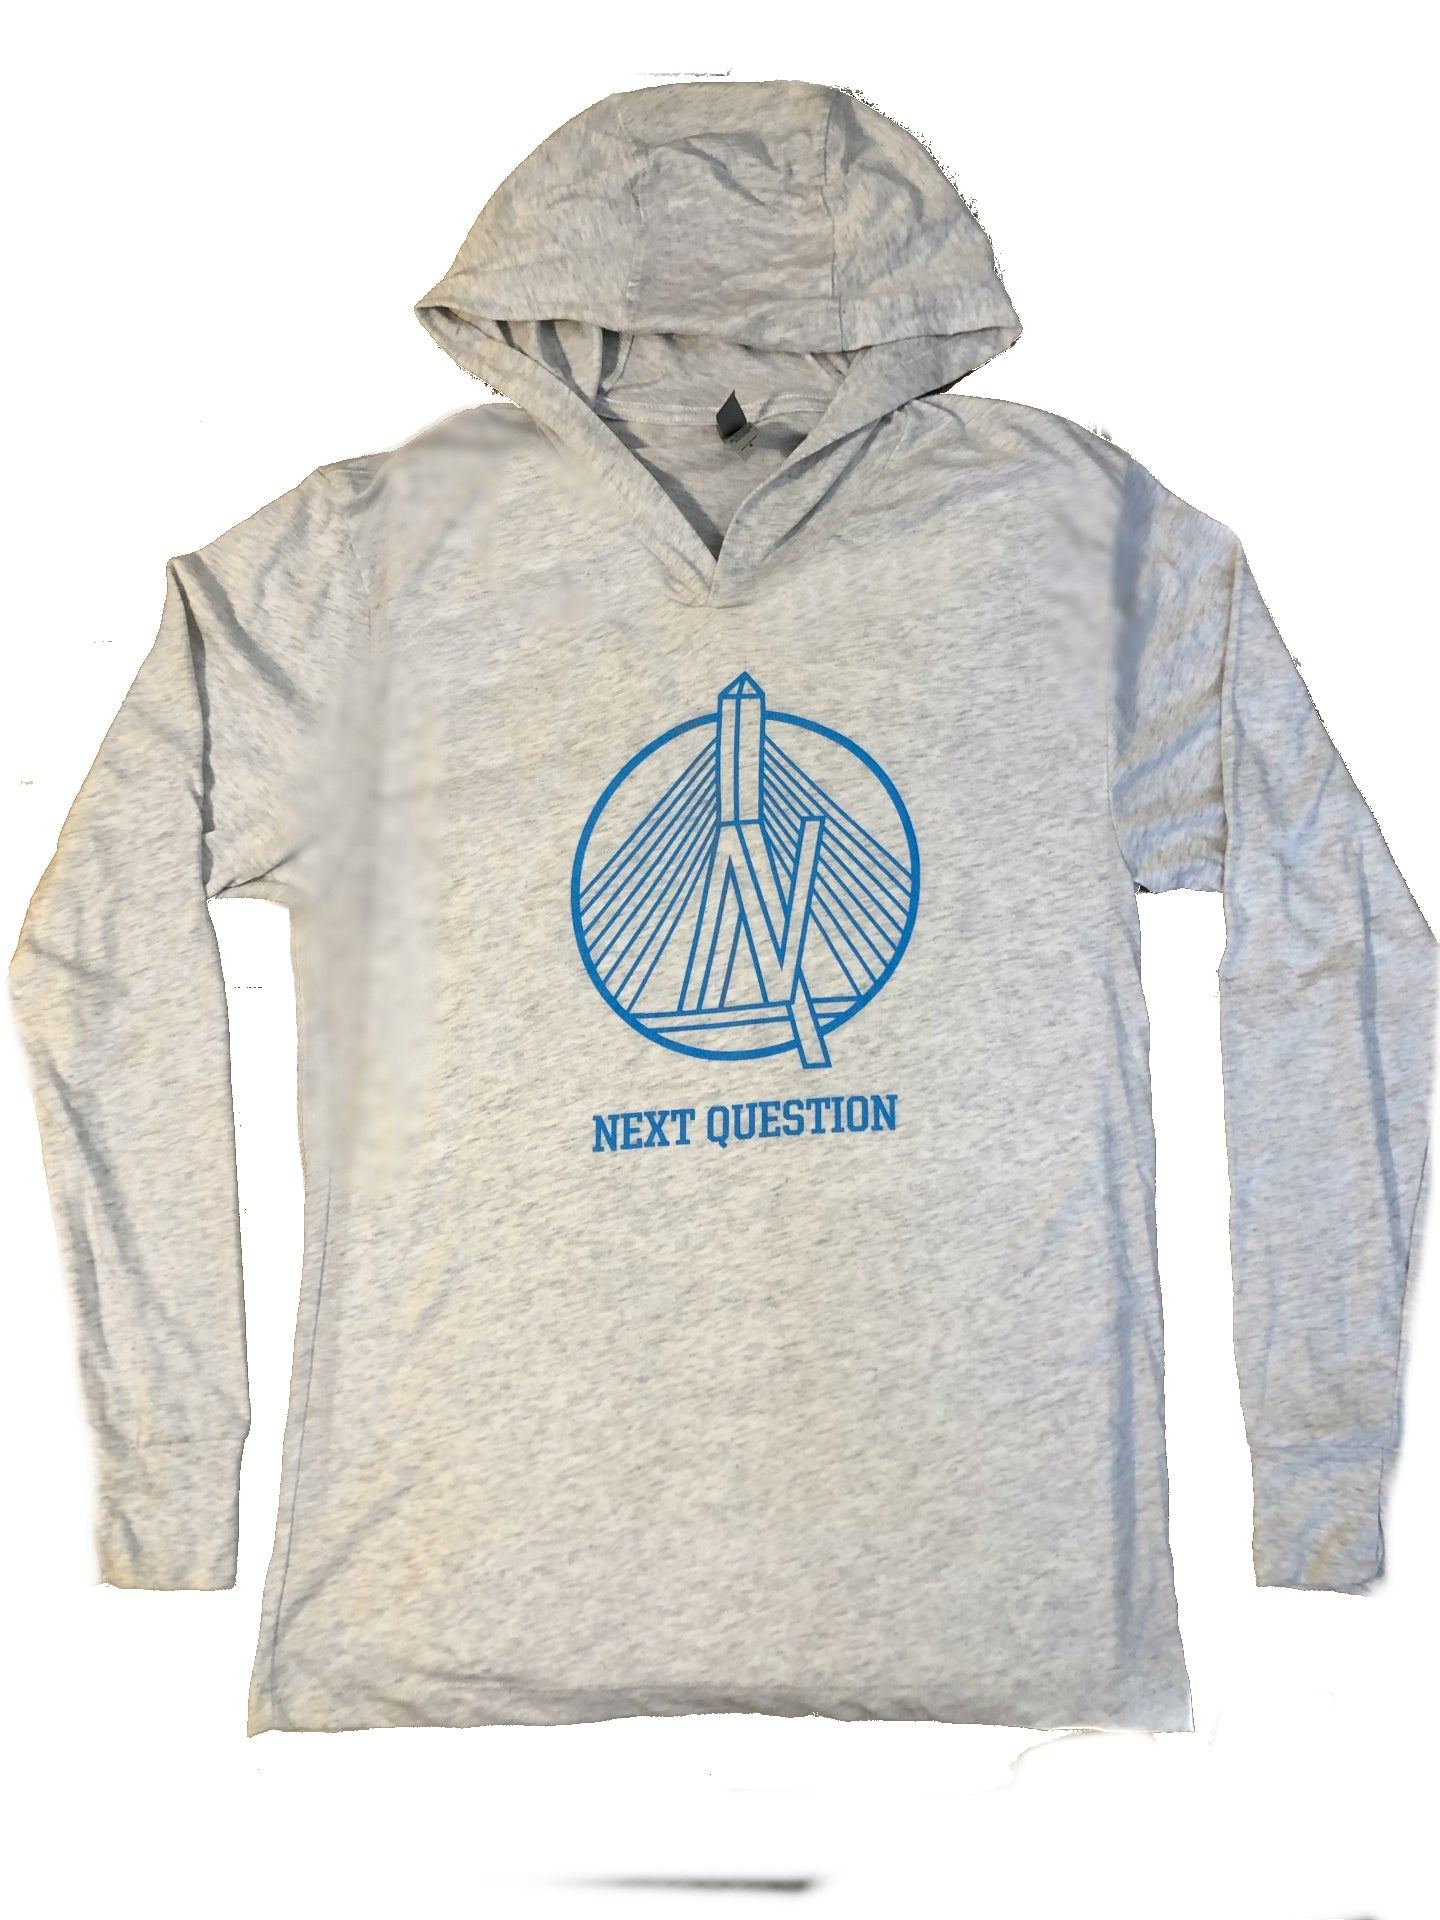 Next Question long sleeve hoodie